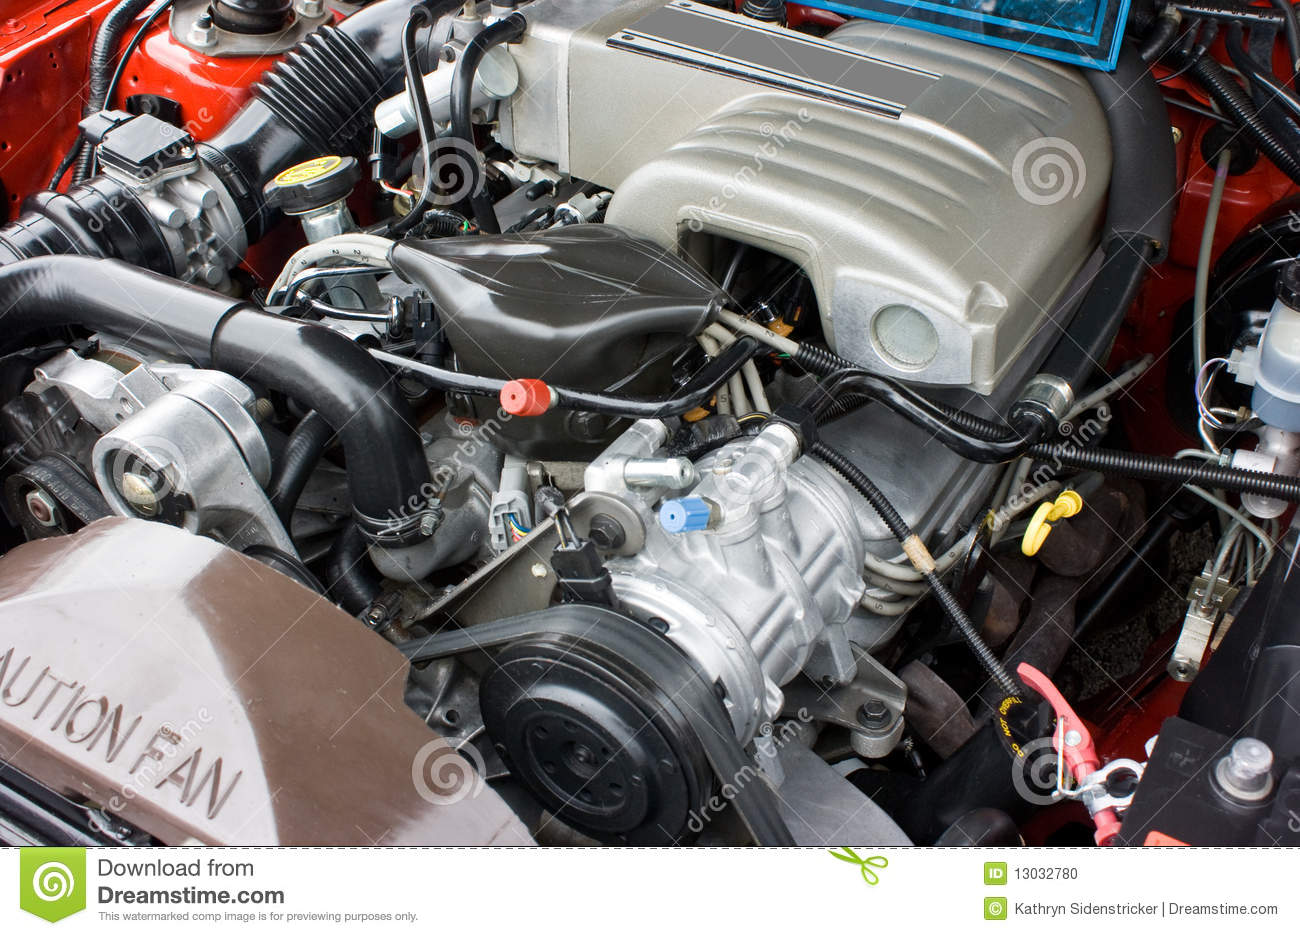 1987 f250 wiring diagram 1993 ford mustang 5 0 v8 engine stock photo image 13032780  1993 ford mustang 5 0 v8 engine stock photo image 13032780